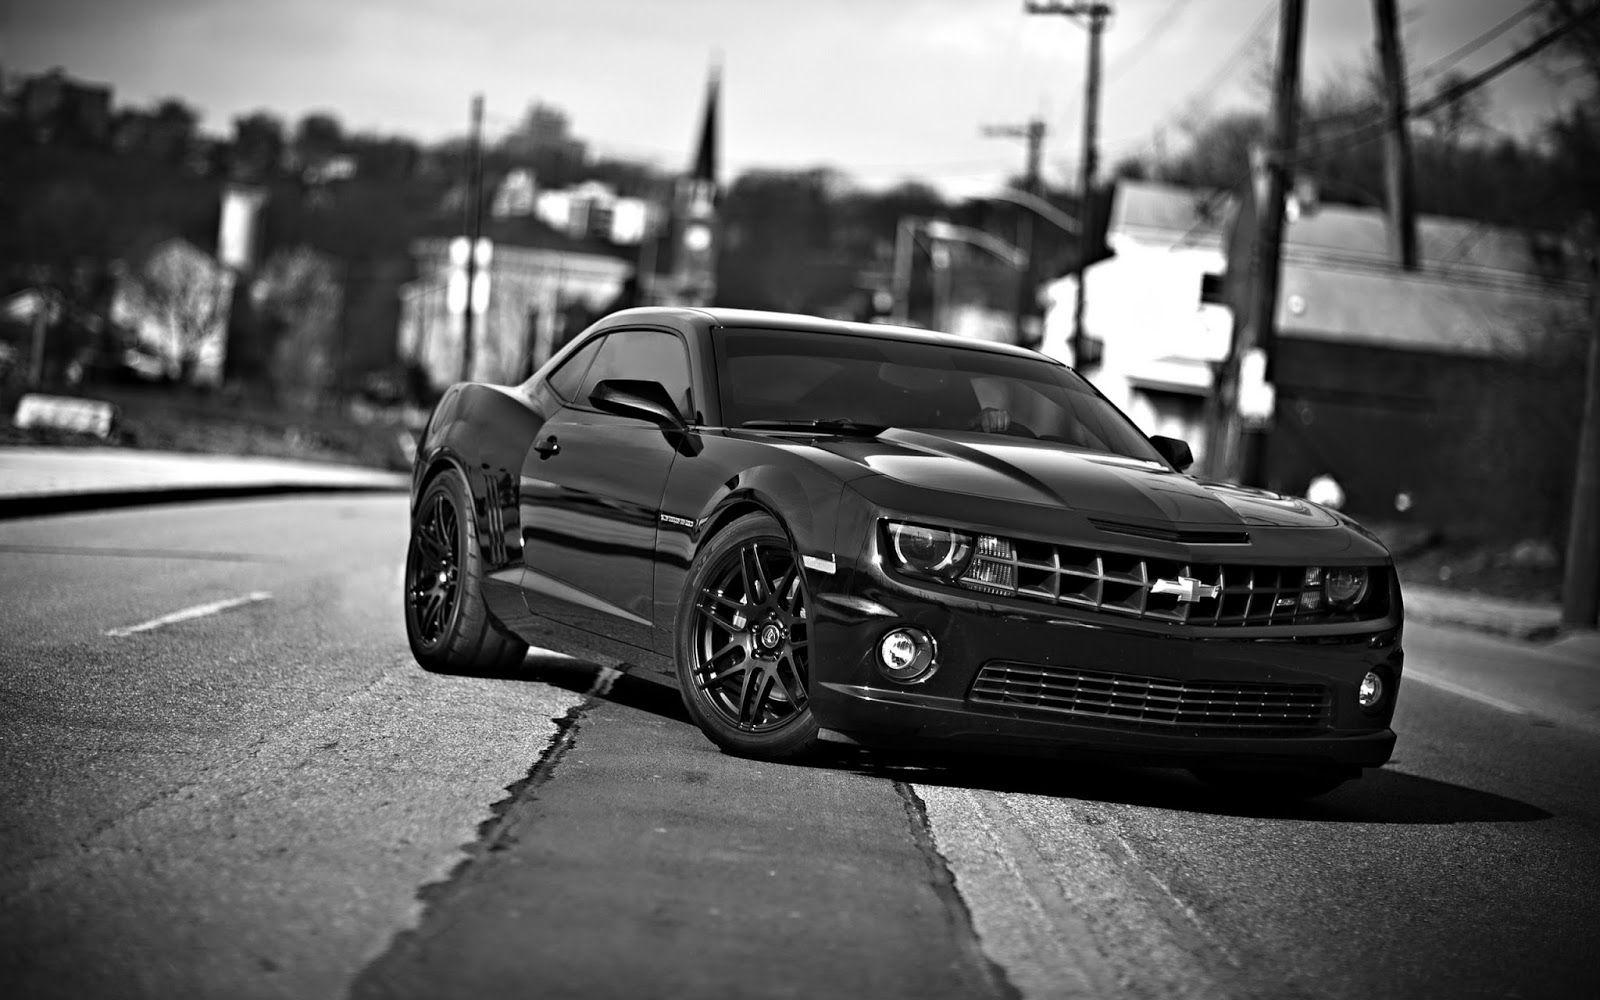 chevrolet camaro cars front - full hd 1080p cars wallpapers, desktop